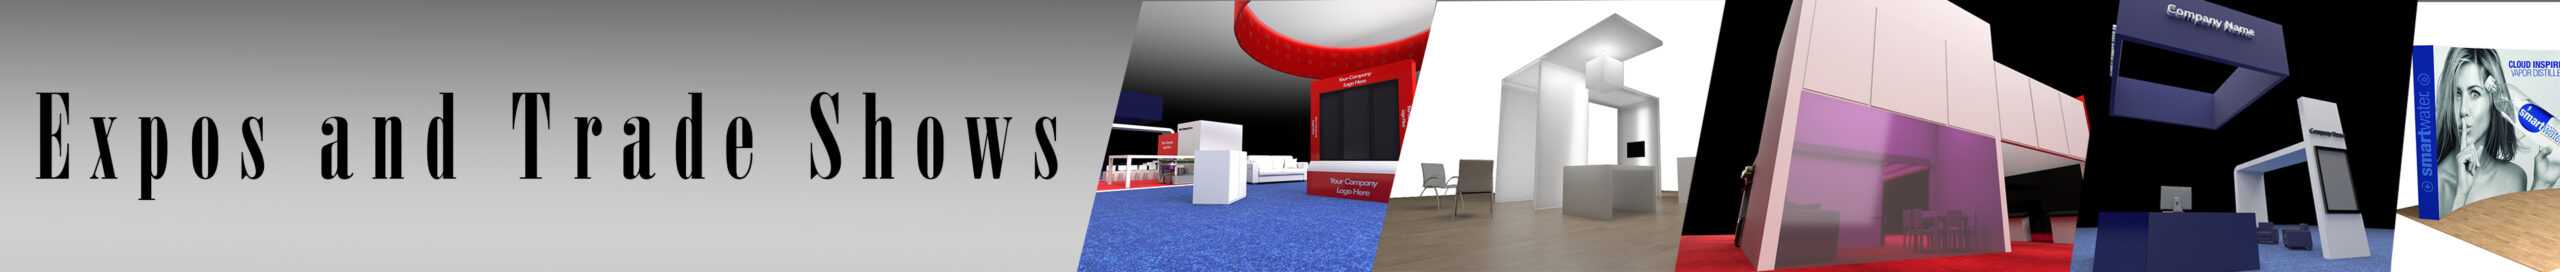 Trade show page banner